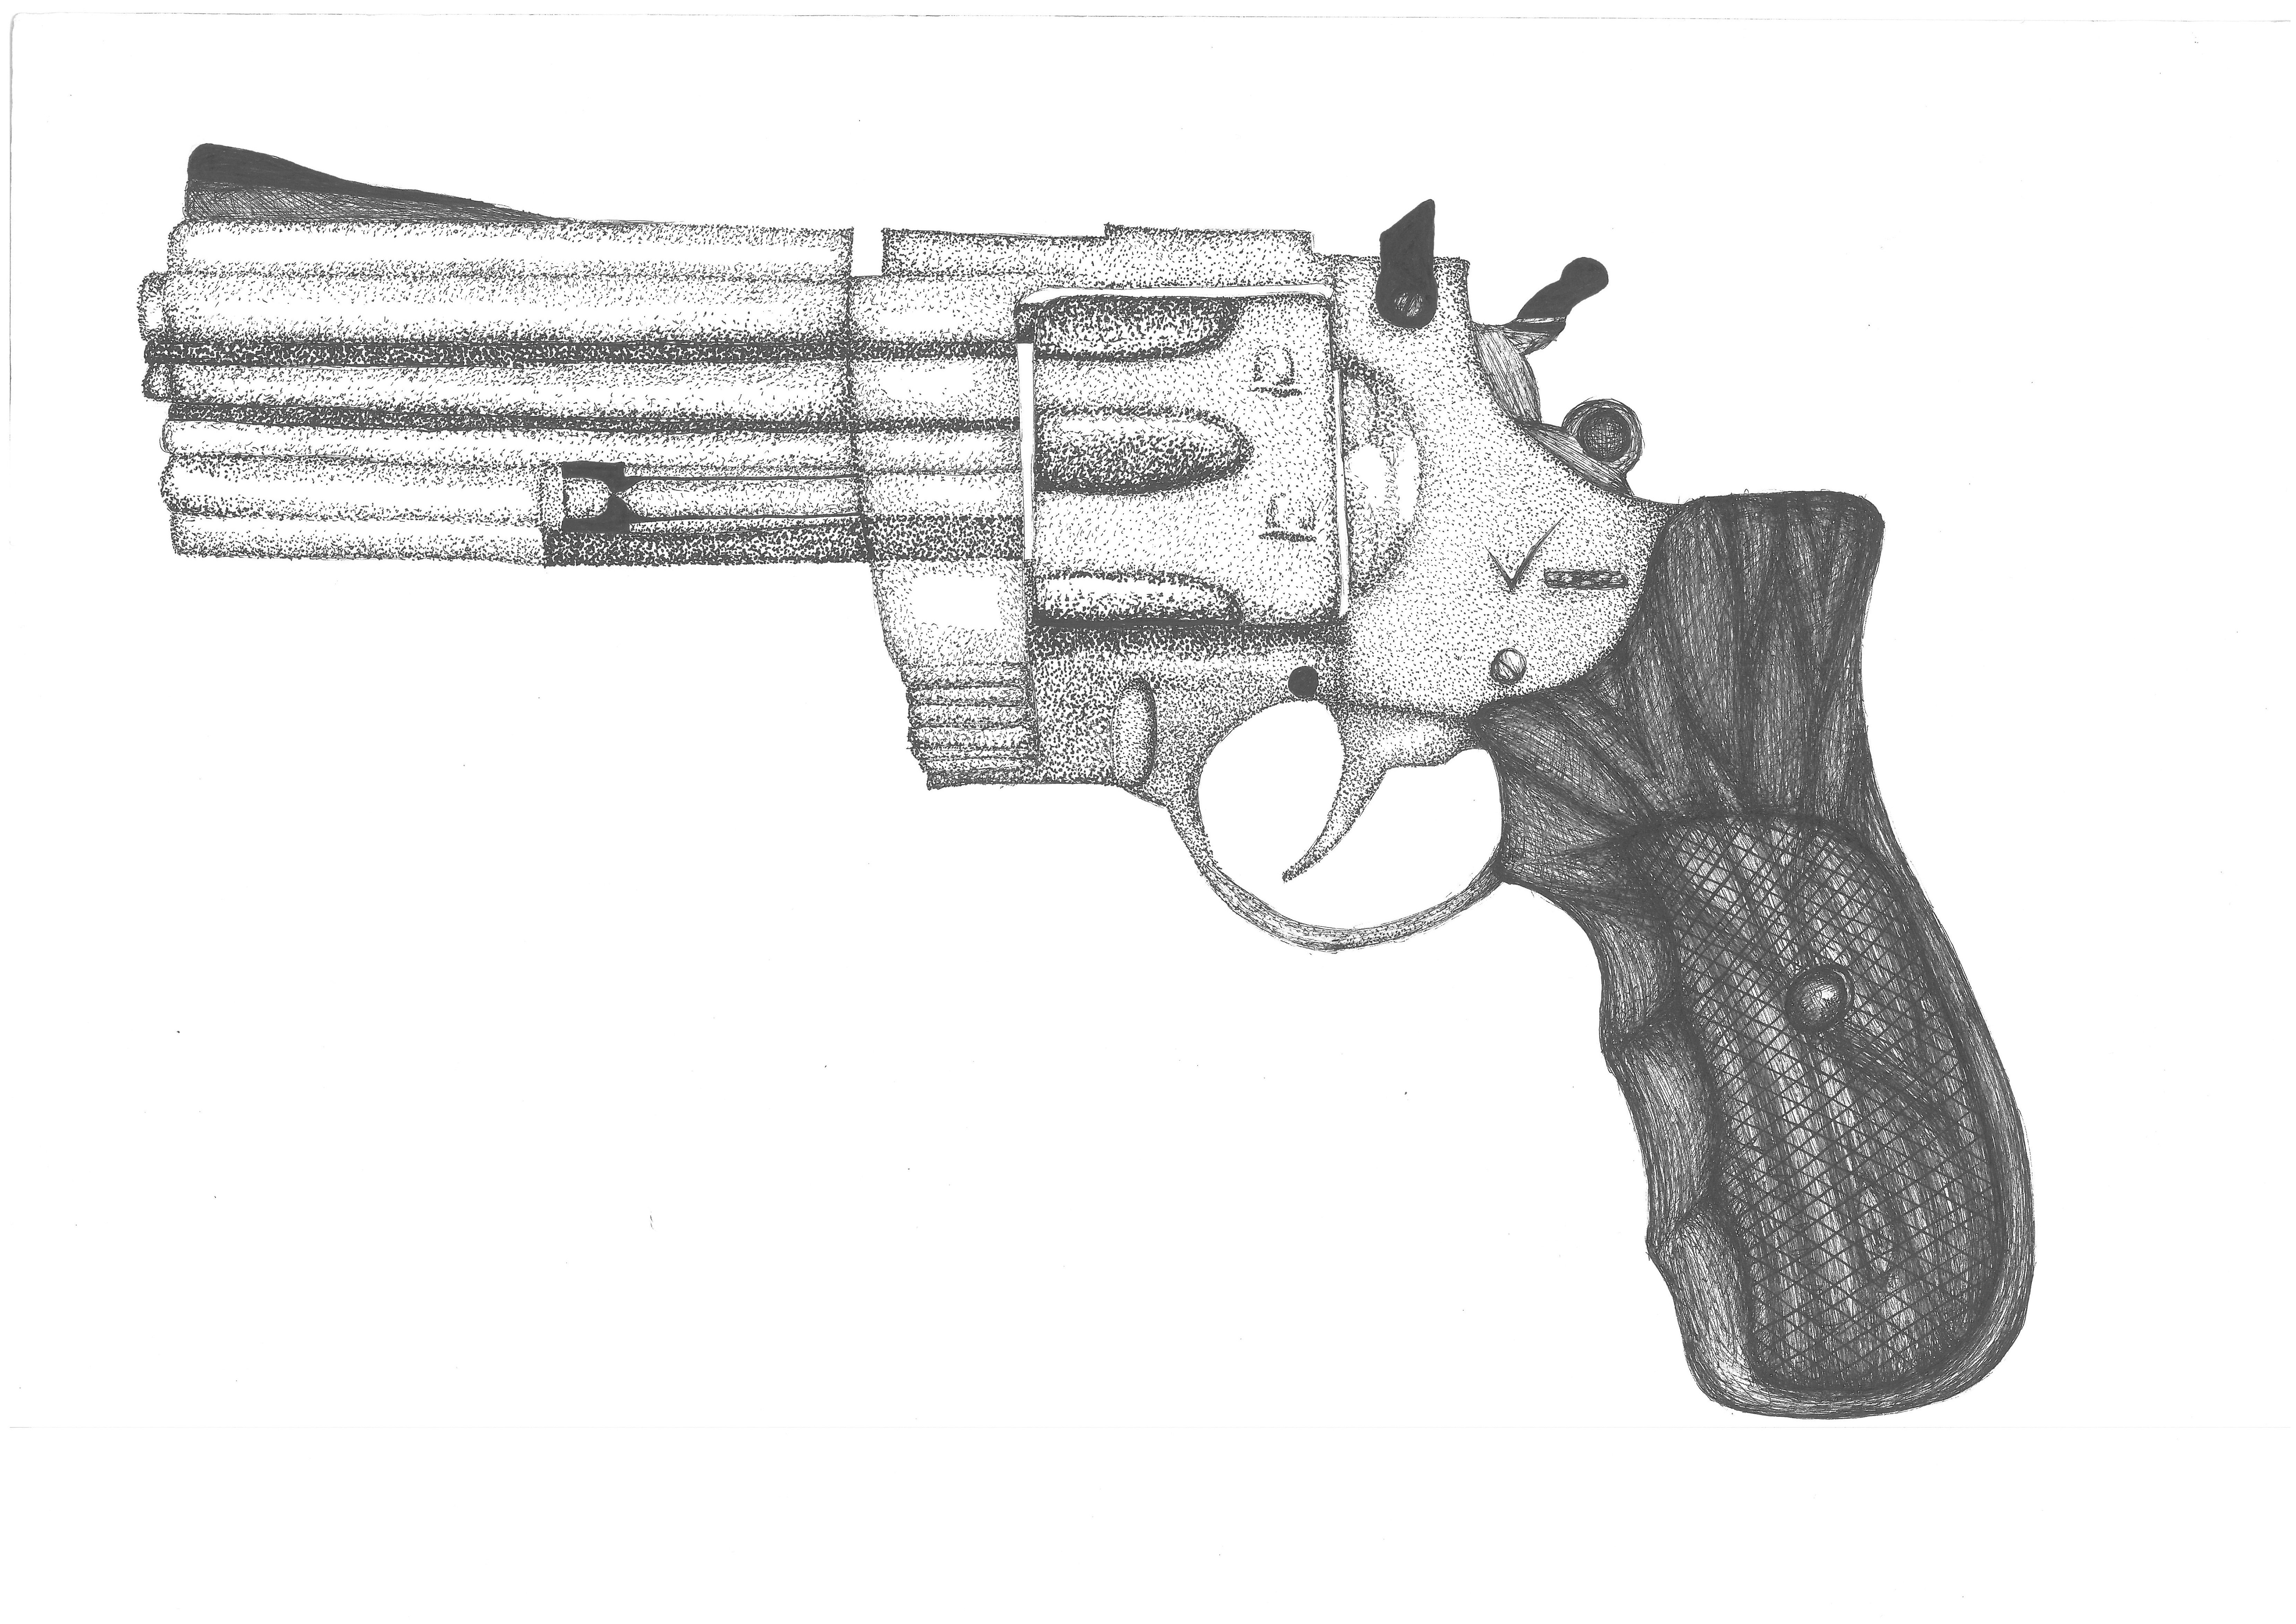 Revolver Gun Pencil Drawing | www.imgkid.com - The Image ...